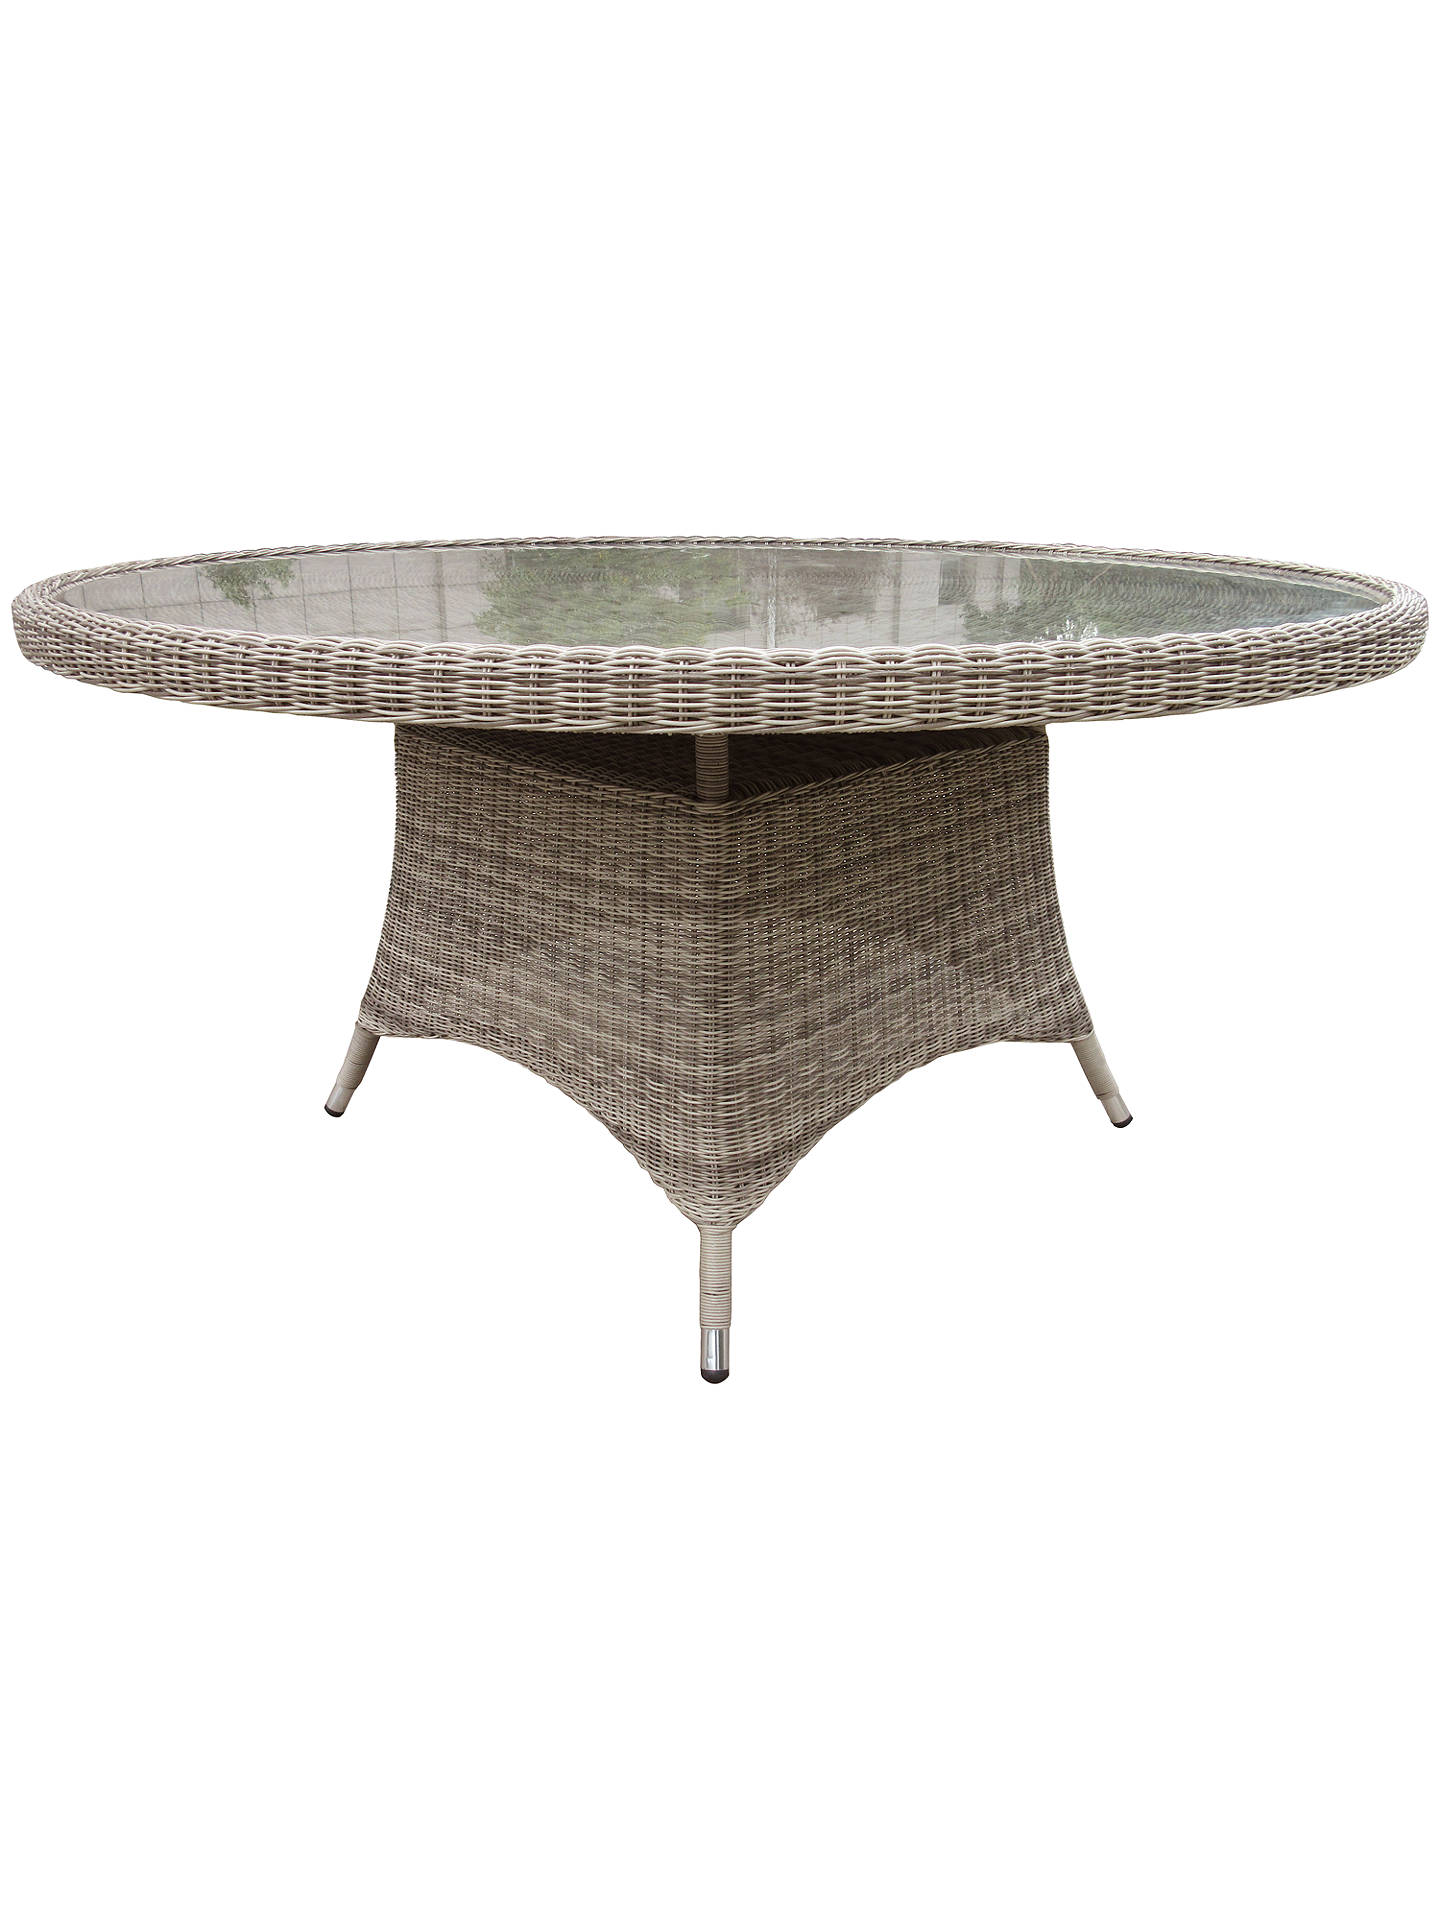 Buy john lewis partners dante 6 seater outdoor dining table natural online at johnlewis